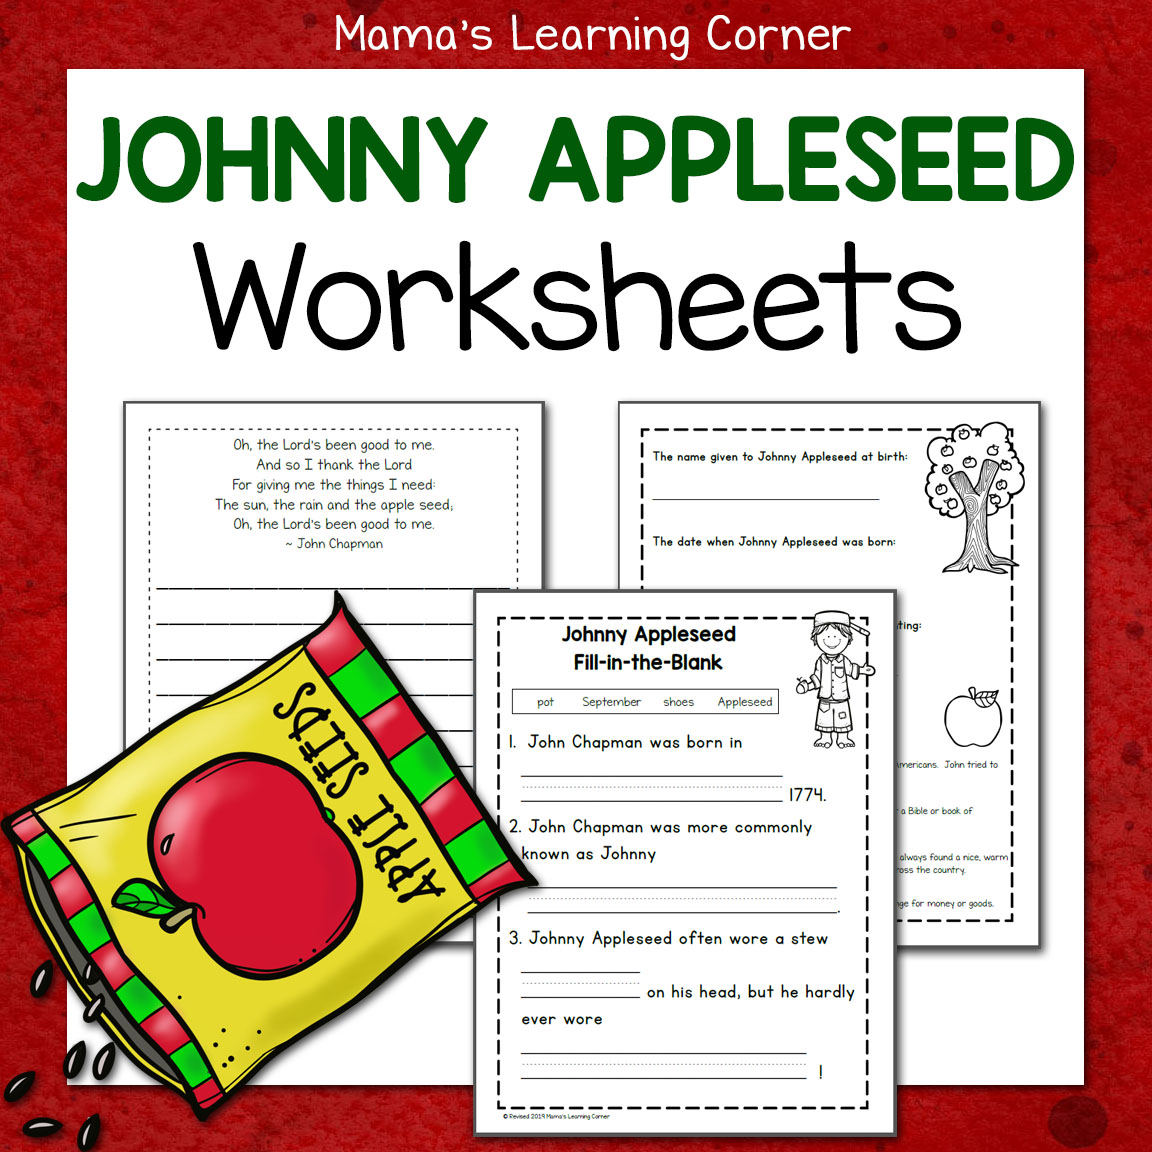 Johnny Appleseed Worksheets